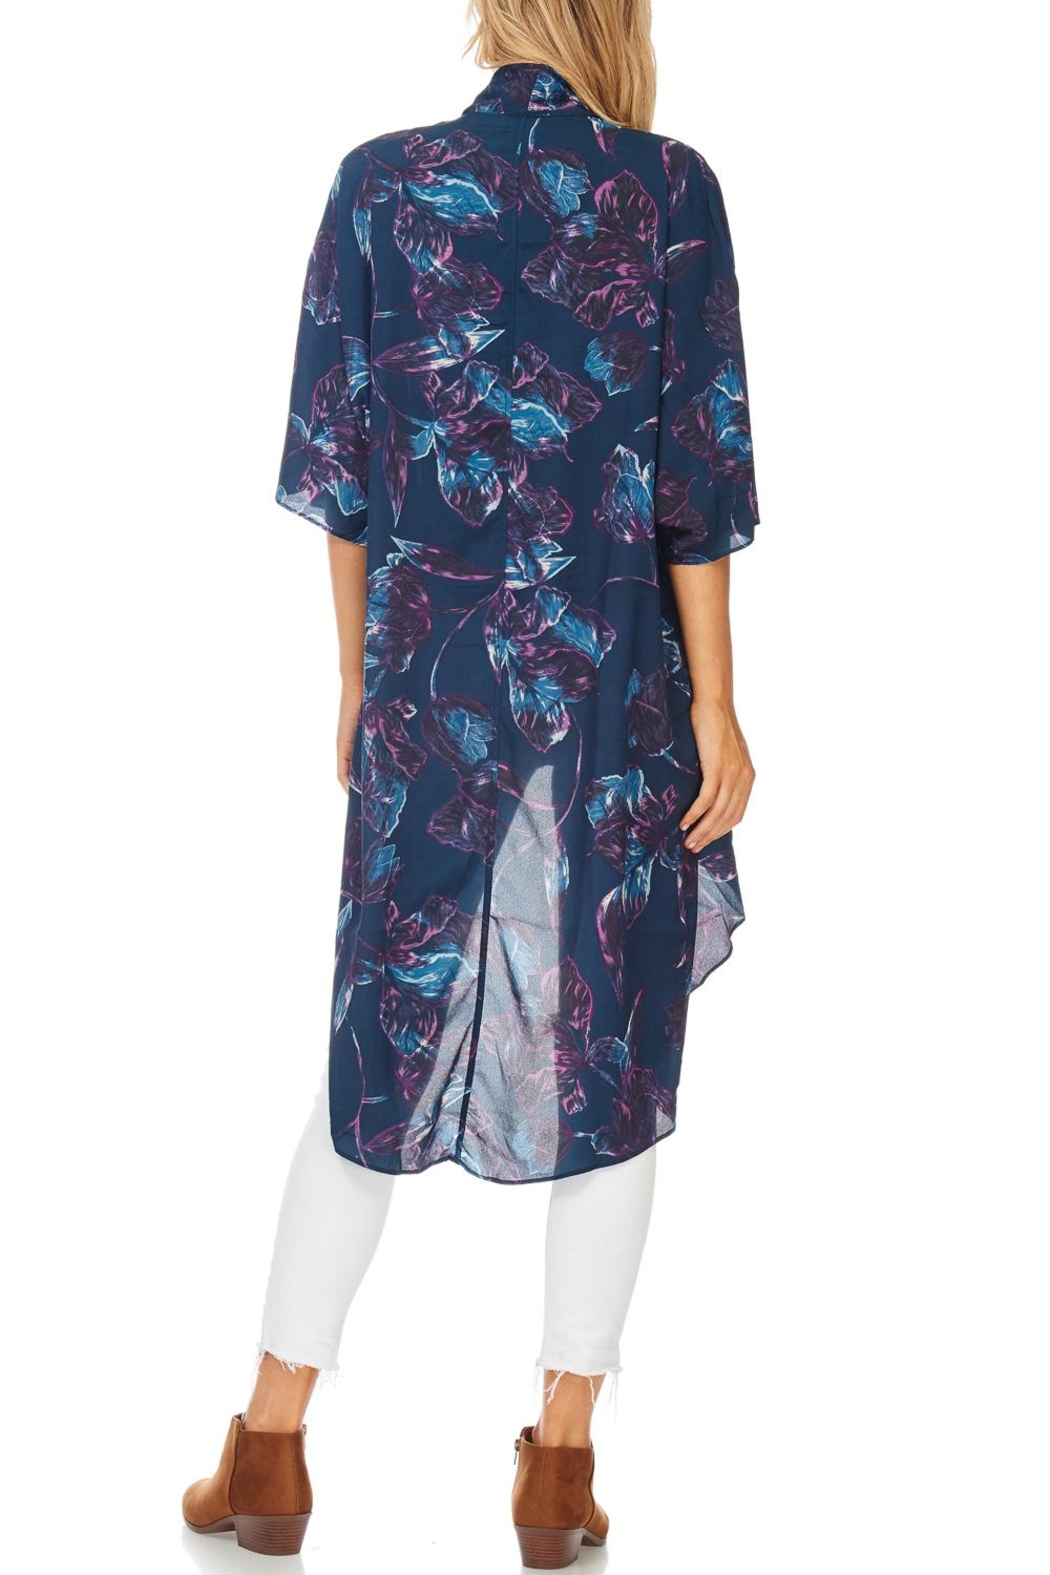 Everly Navy Floral Kimono - Front Full Image